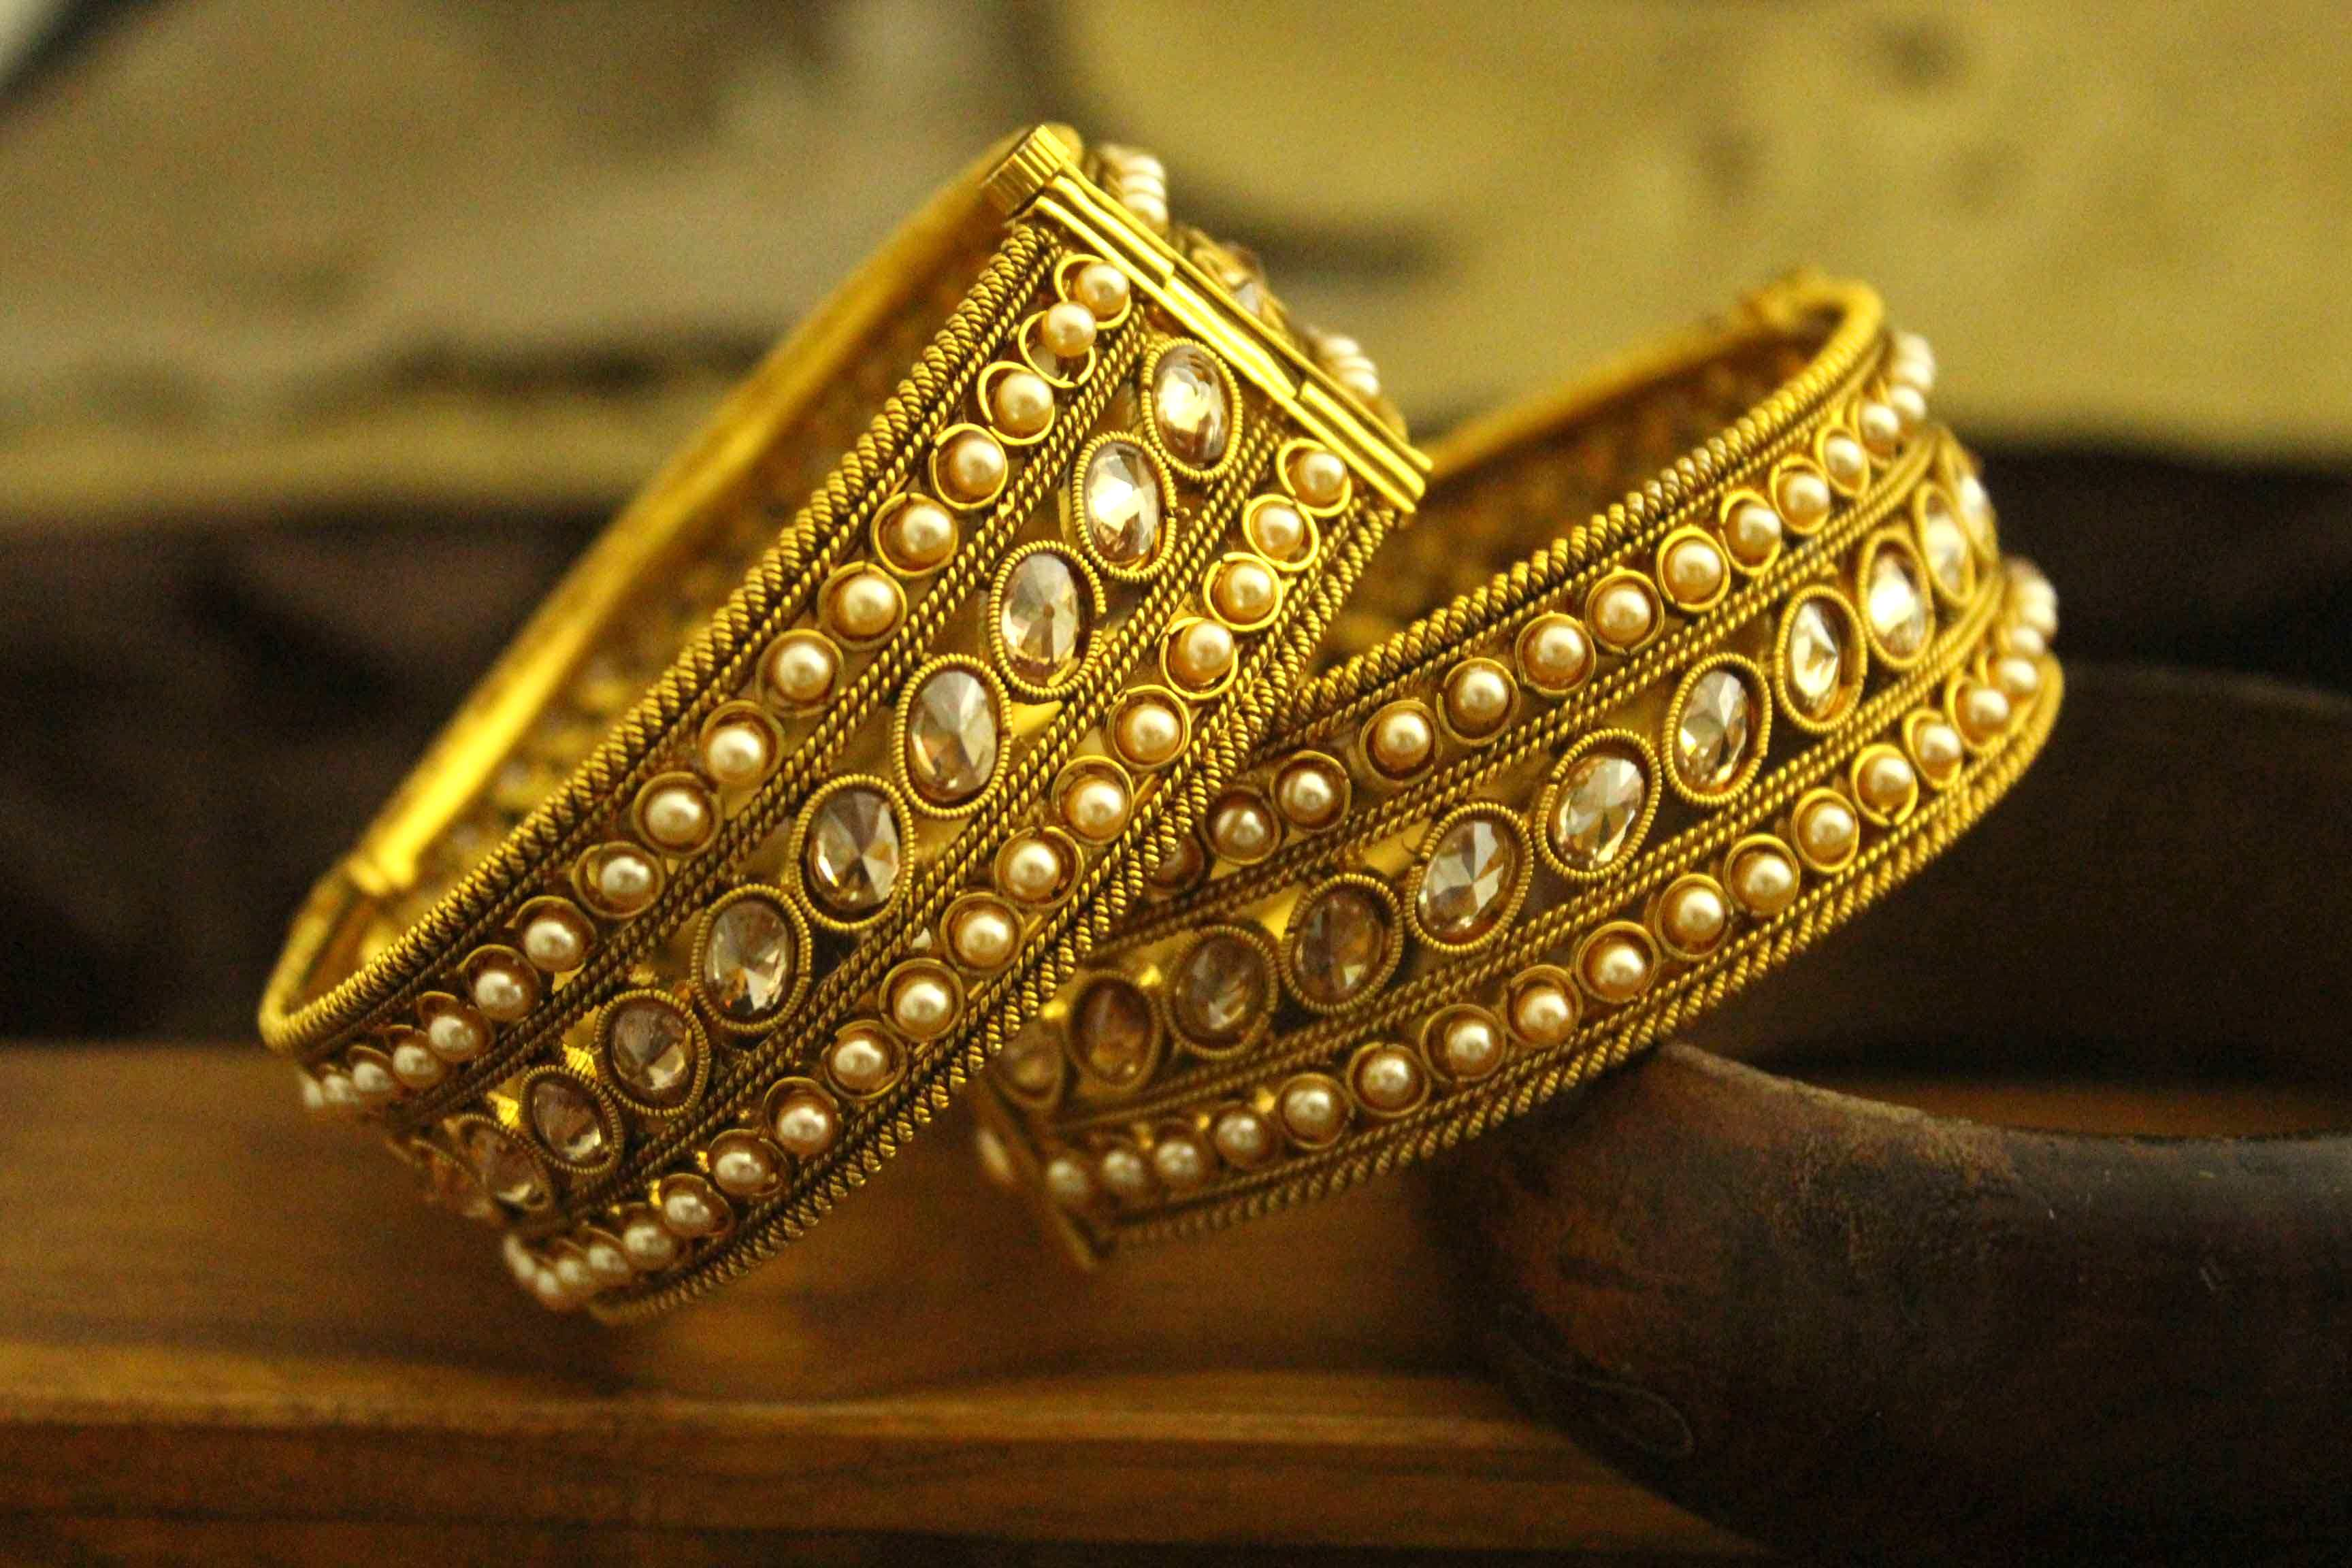 jewellery gold indian designer jewelery gemnjewelery elegant royal jadau bangles